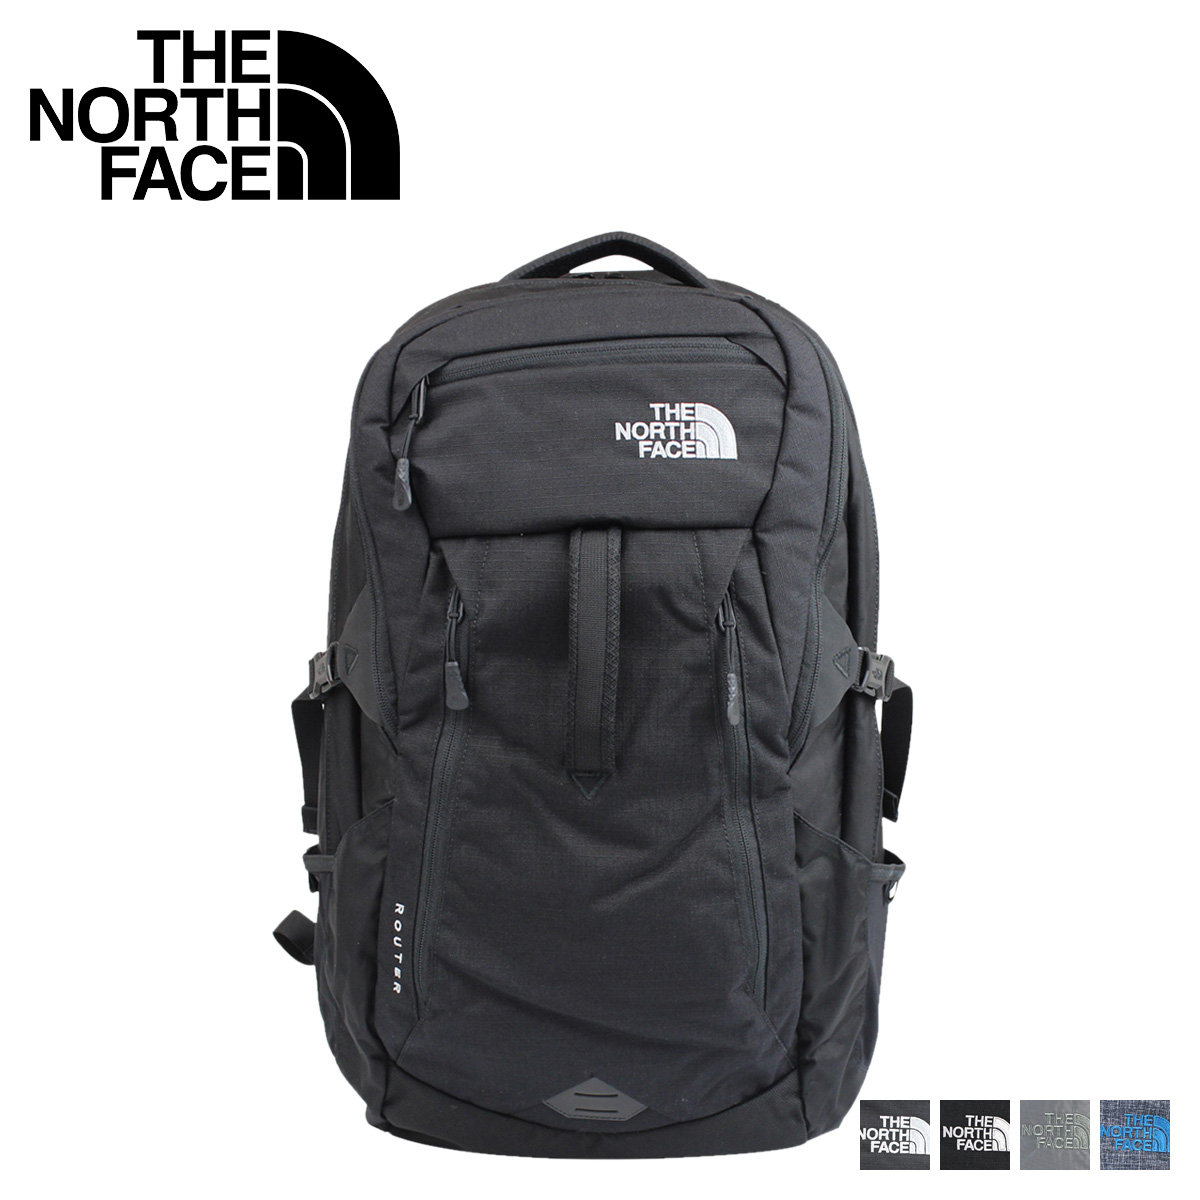 9b81b6a29 THE NORTH FACE north face rucksack backpack ROUTER BACKPACK 35L LH3C mens  ladies [8/2 Add in stock]